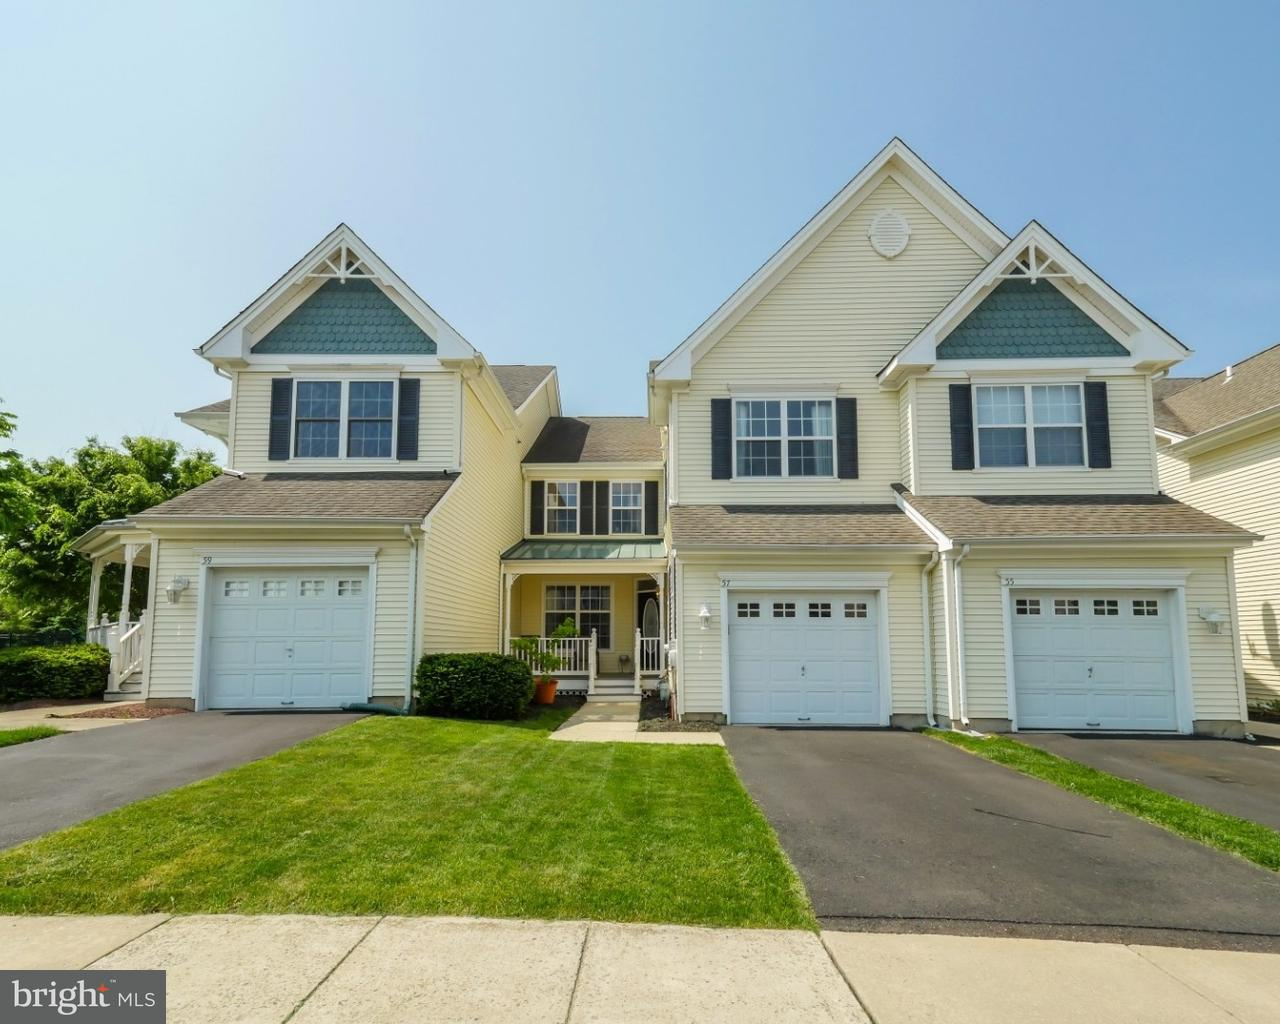 57 BREWSTER DR, IVYLAND - Listed at $349,900, IVYLAND